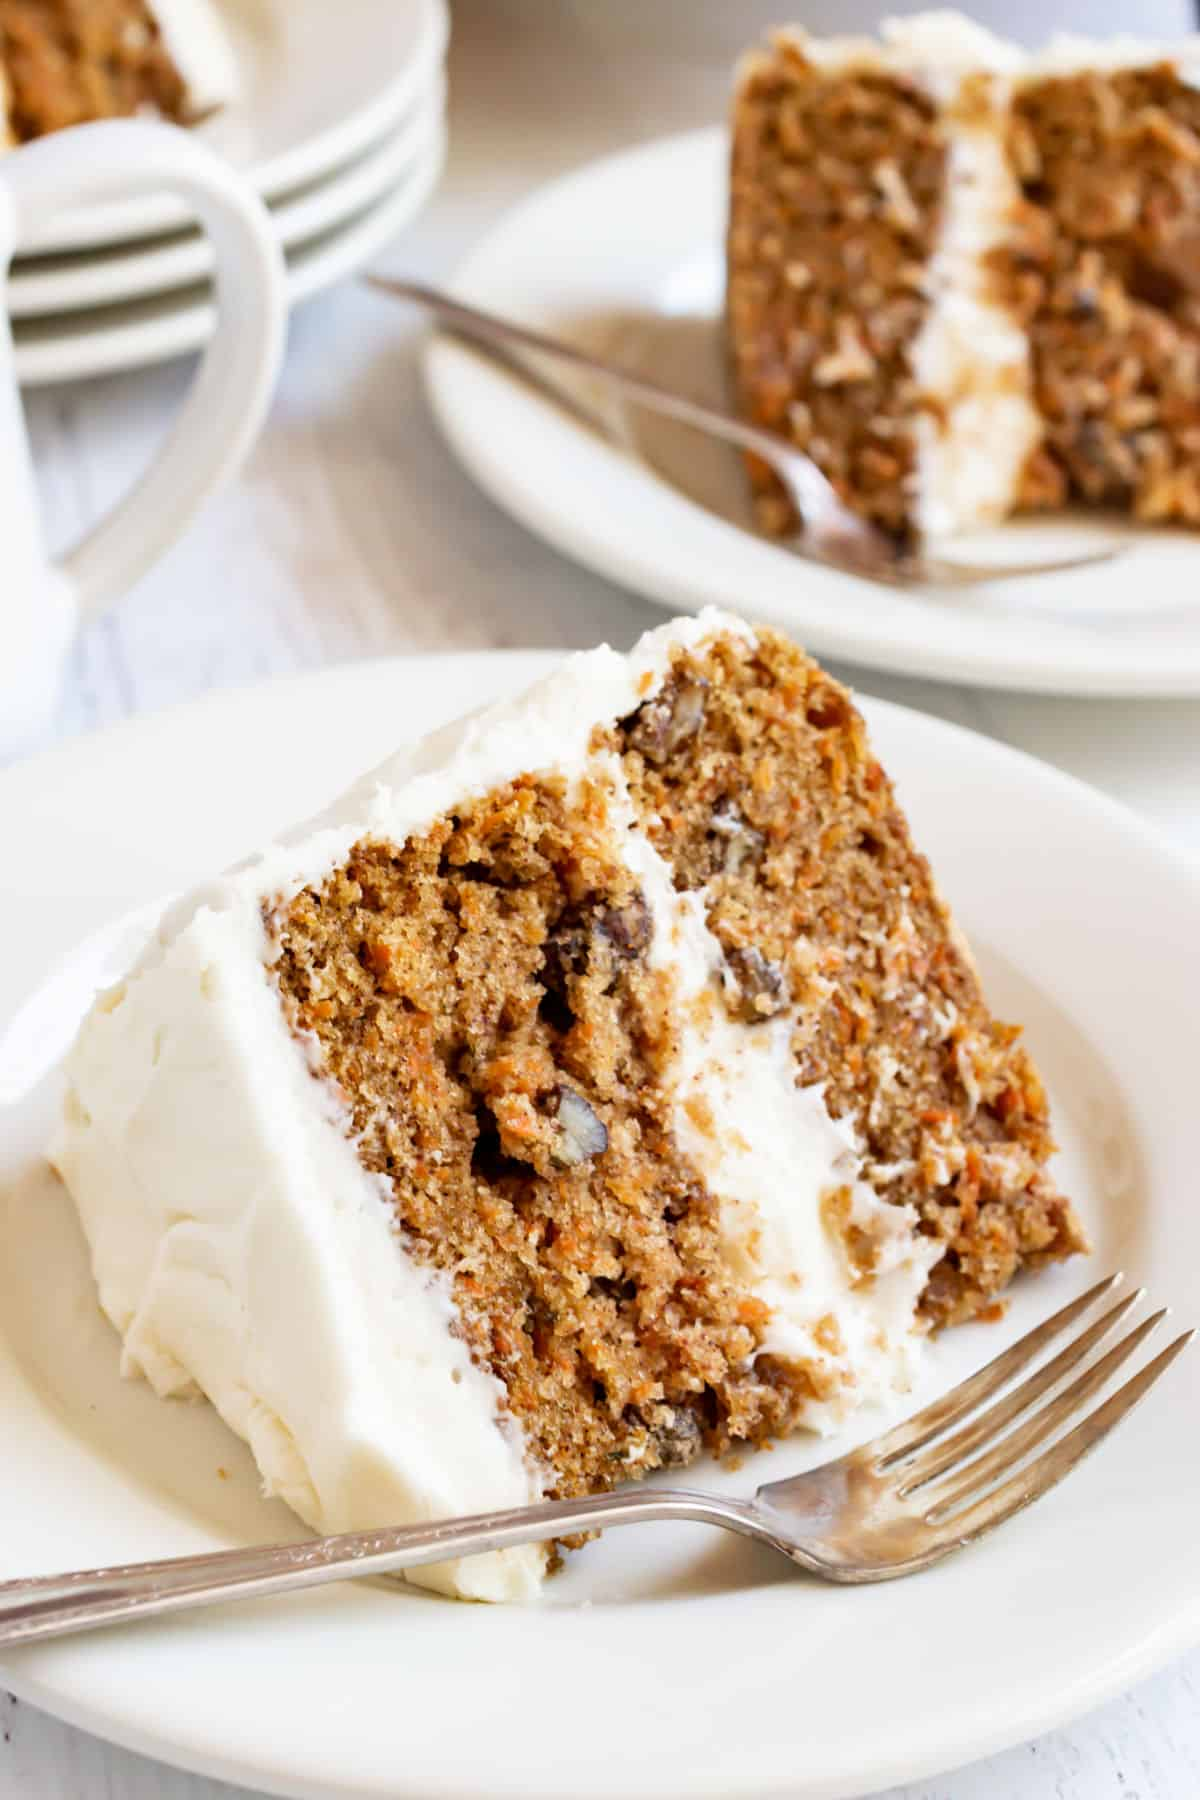 Two slices of carrot cake with cream cheese frosting on white plates.